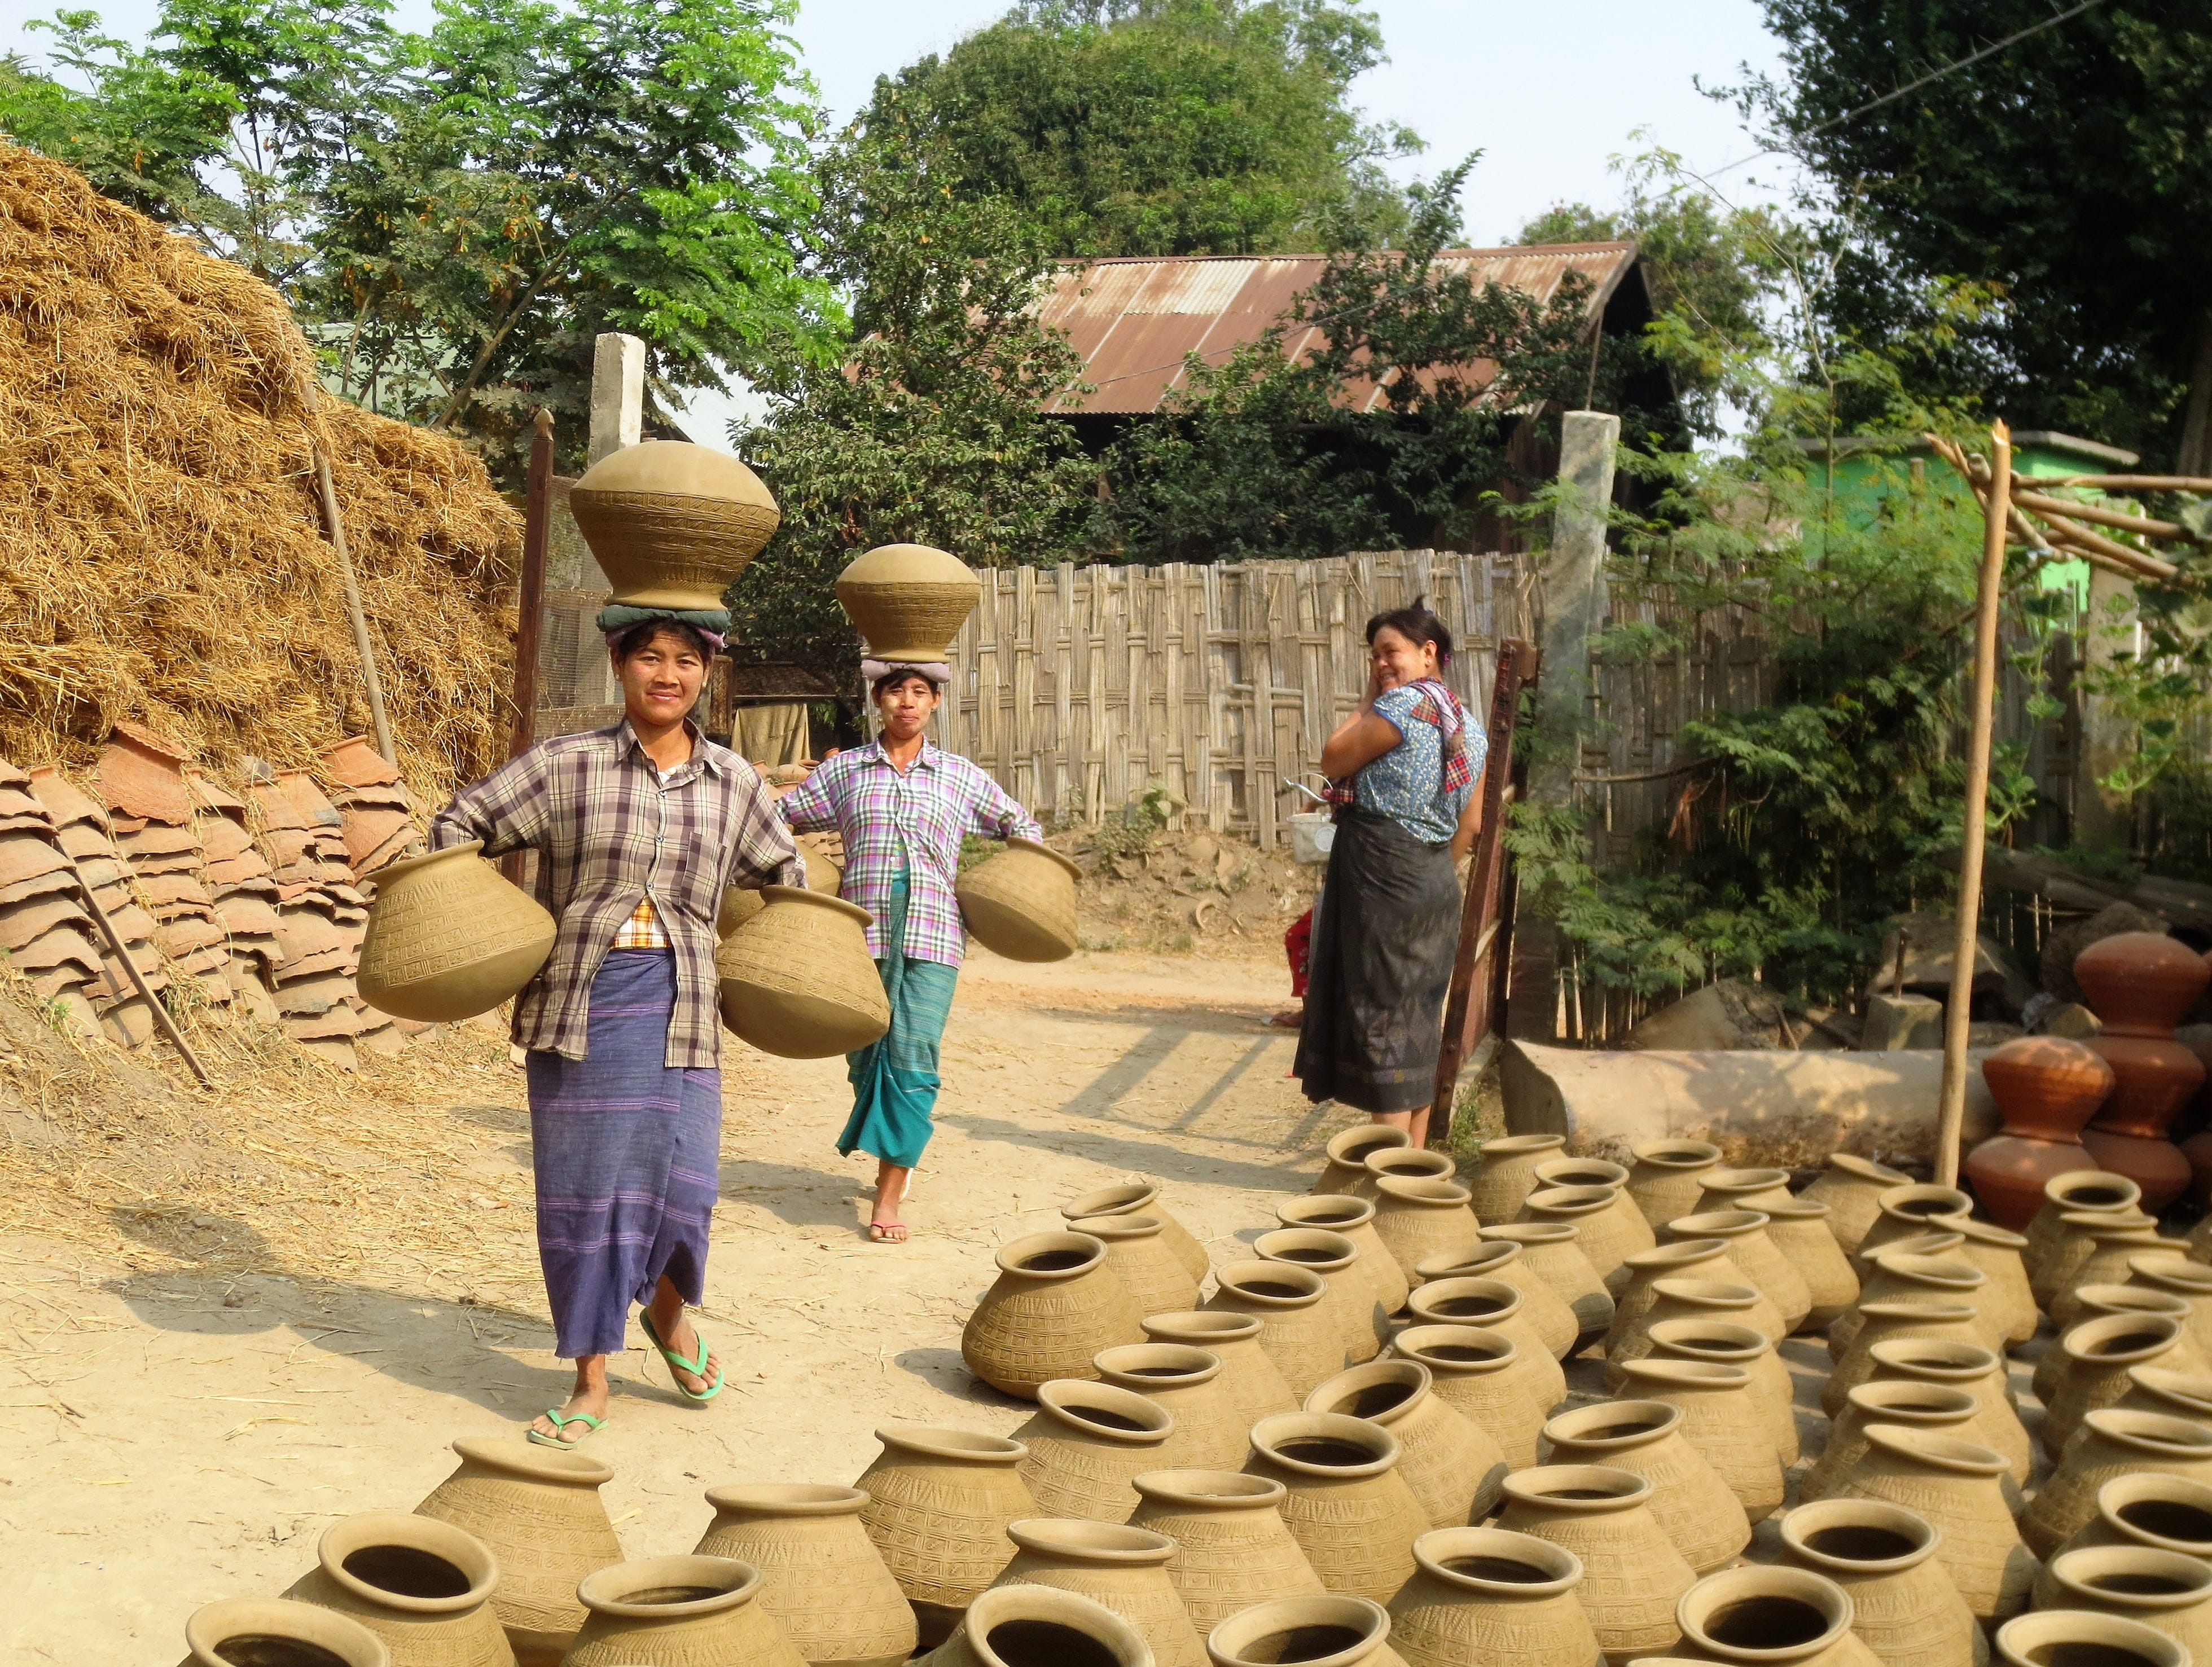 The village of Yandabo, Myanmar, famous for its handmade pottery.